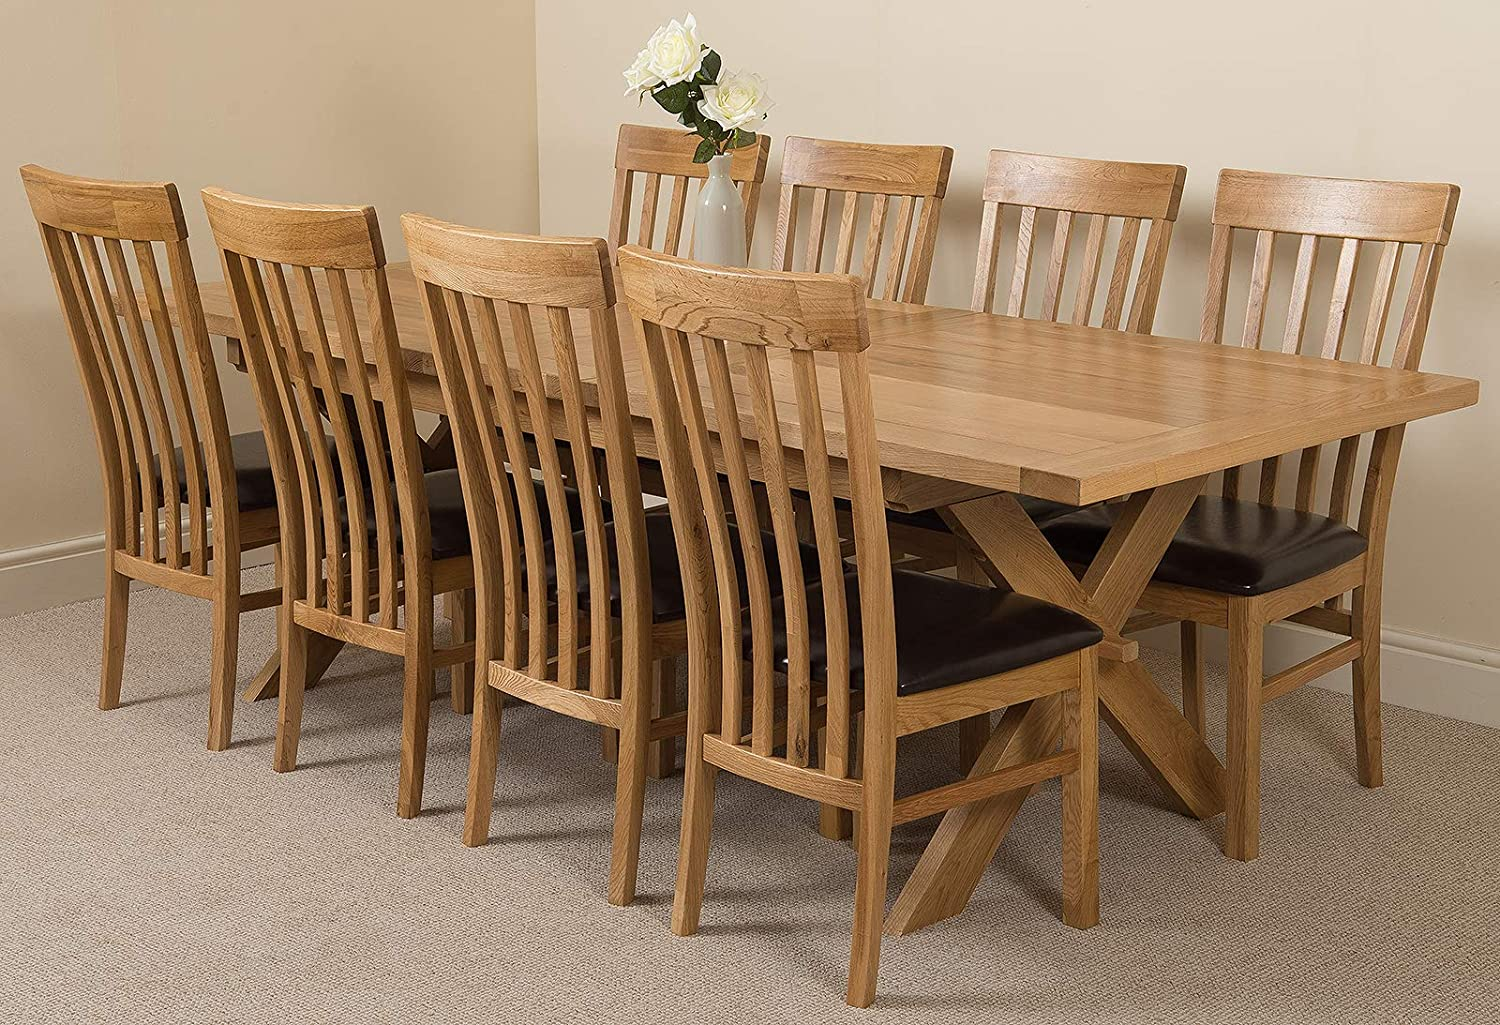 Vermont 9 9 cm Extendable Large Oak Dining Table with 9 Chairs ...